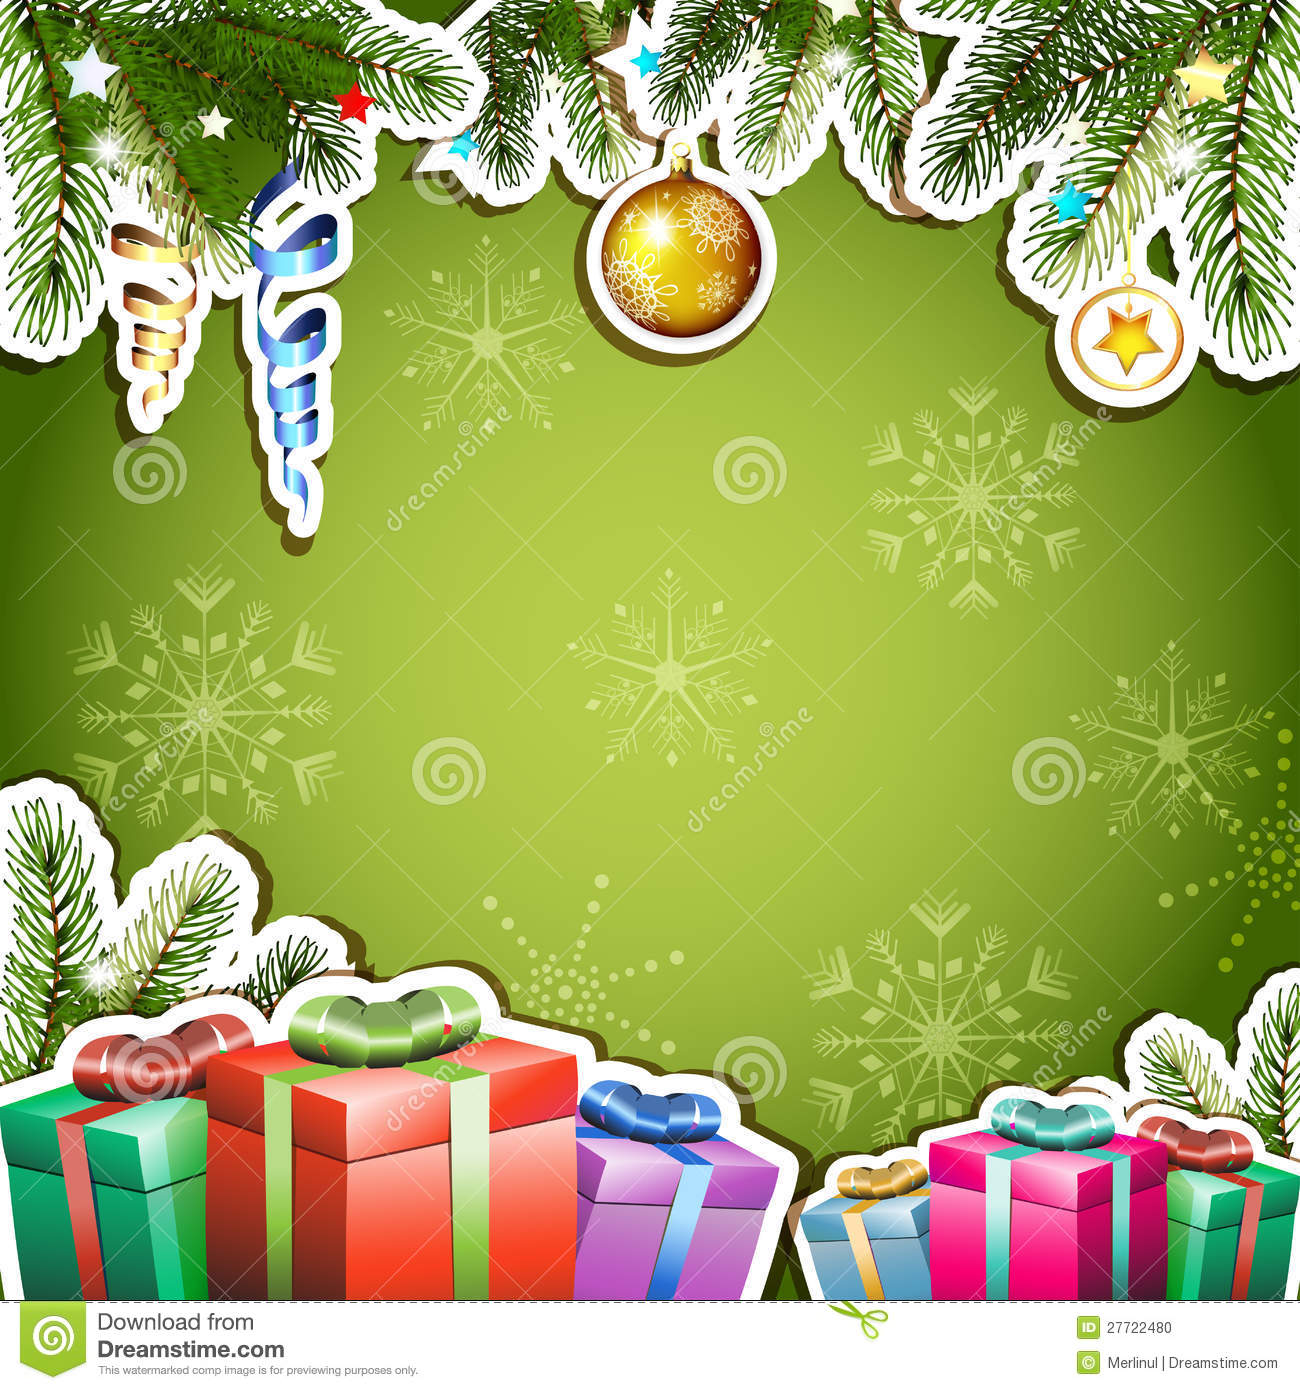 Christmas Gift Background: Green Background With Christmas Gifts Stock Vector